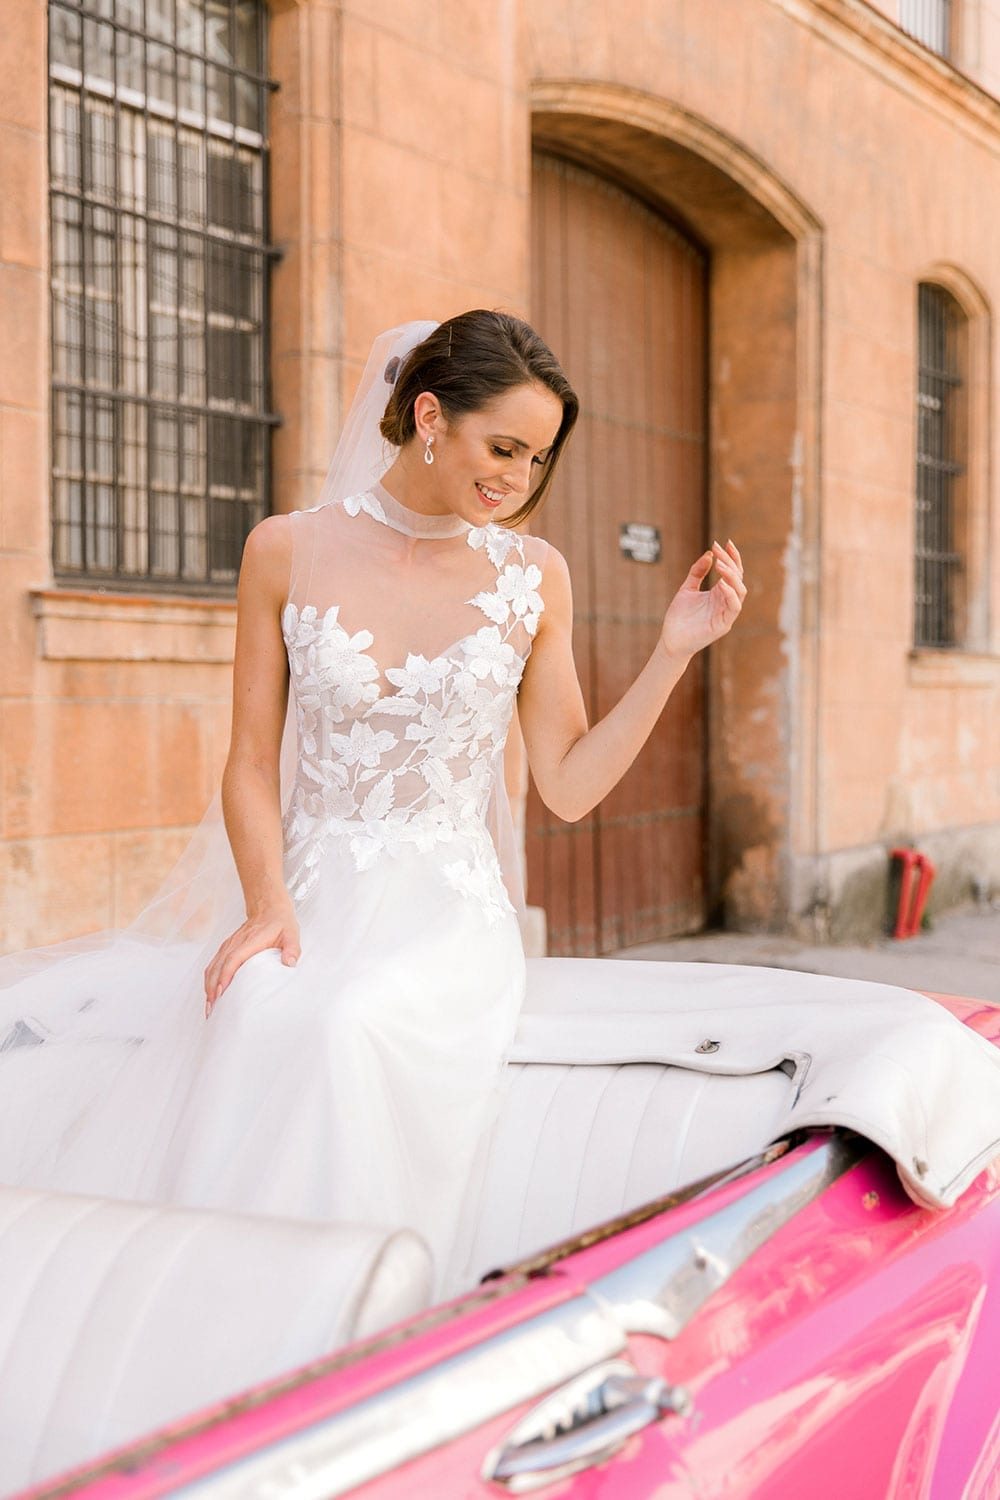 Model wearing Vinka Design Julia Wedding Dress, a High Neck Tulle Wedding Gown next to a classic car in Havana